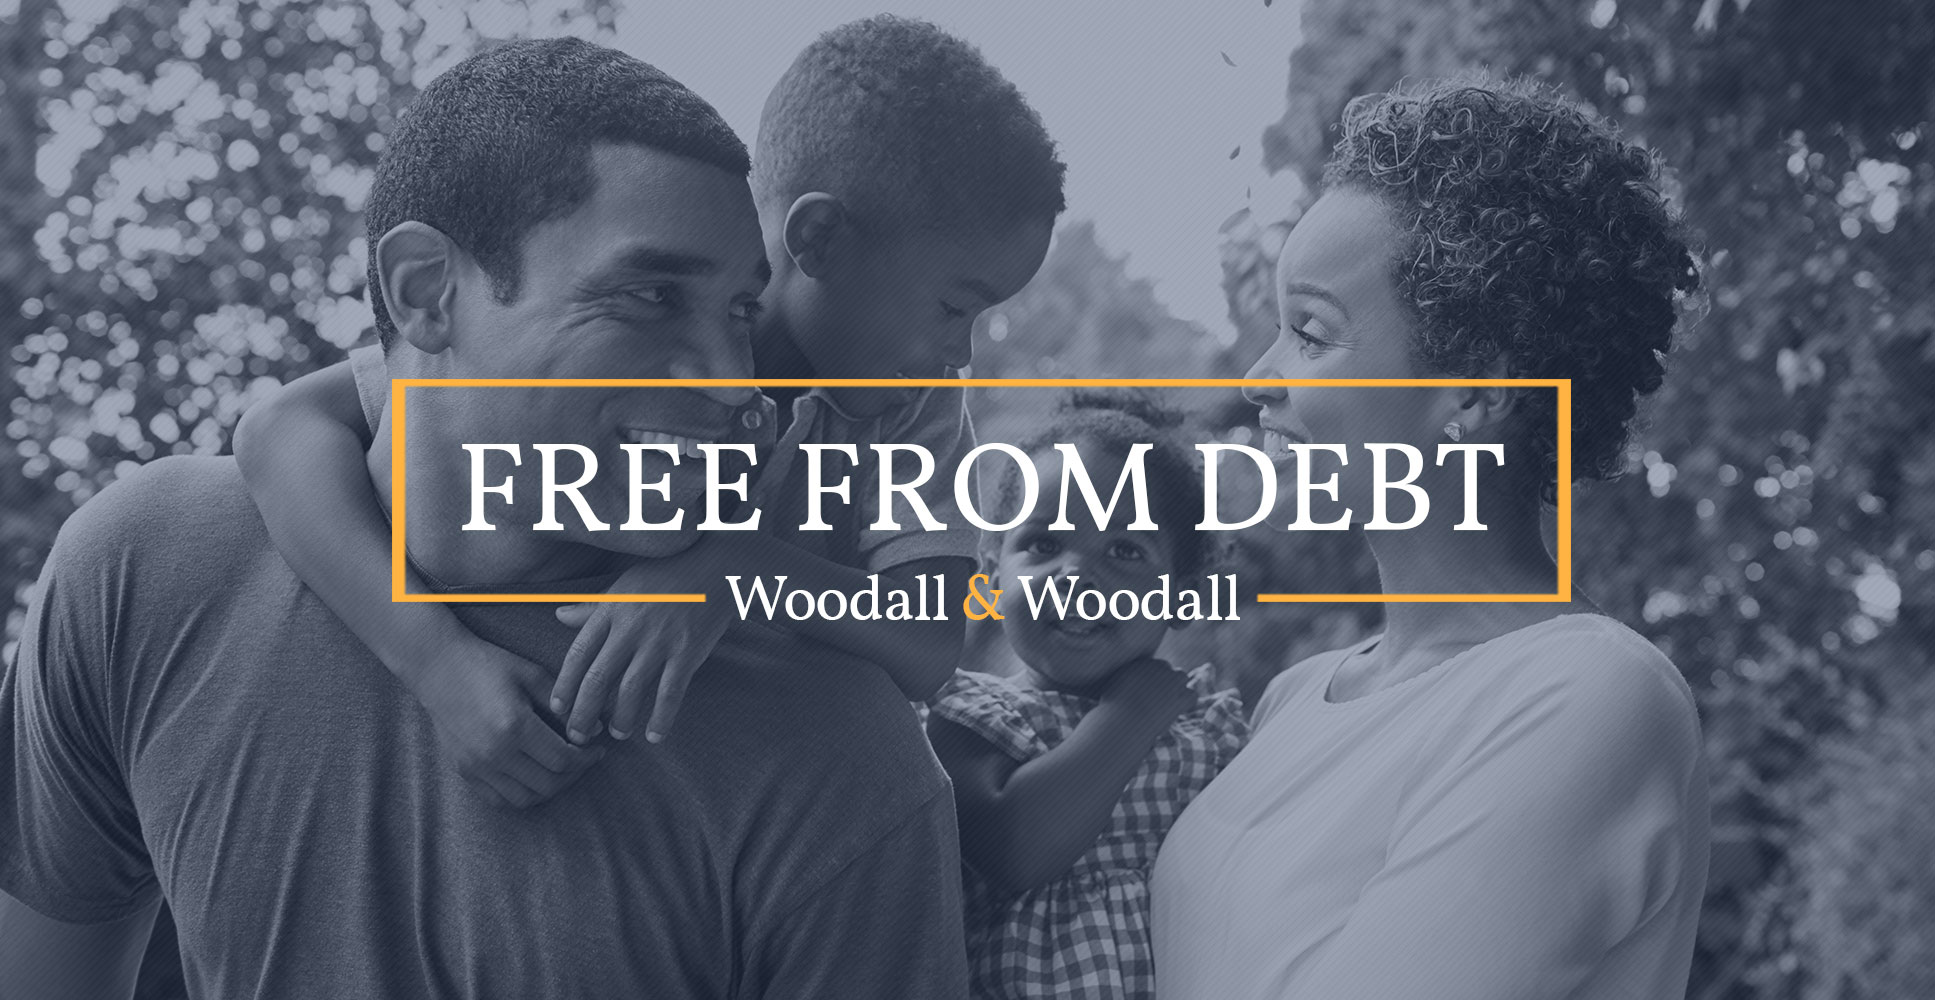 Woodall & Woodall offers debt relief services